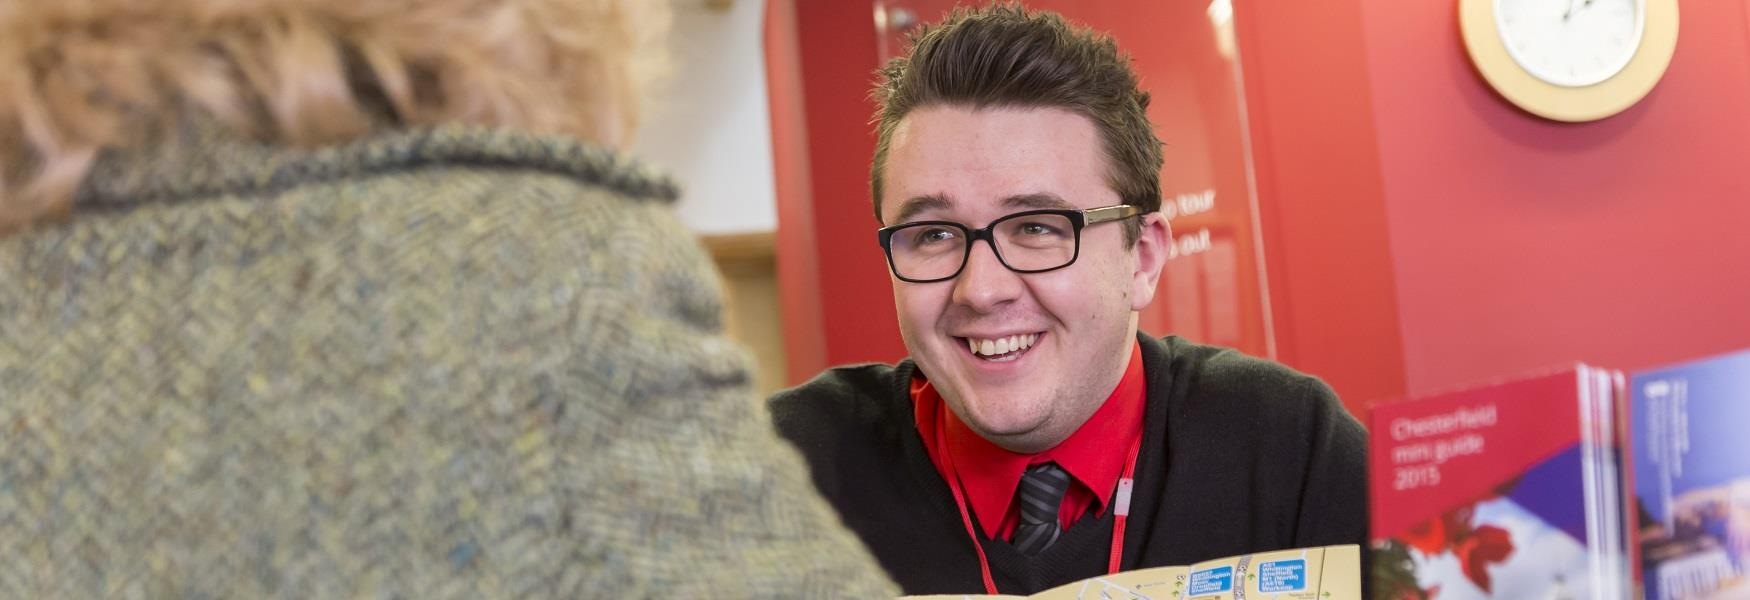 Customer being served at Chesterfield Visitor Information Centre